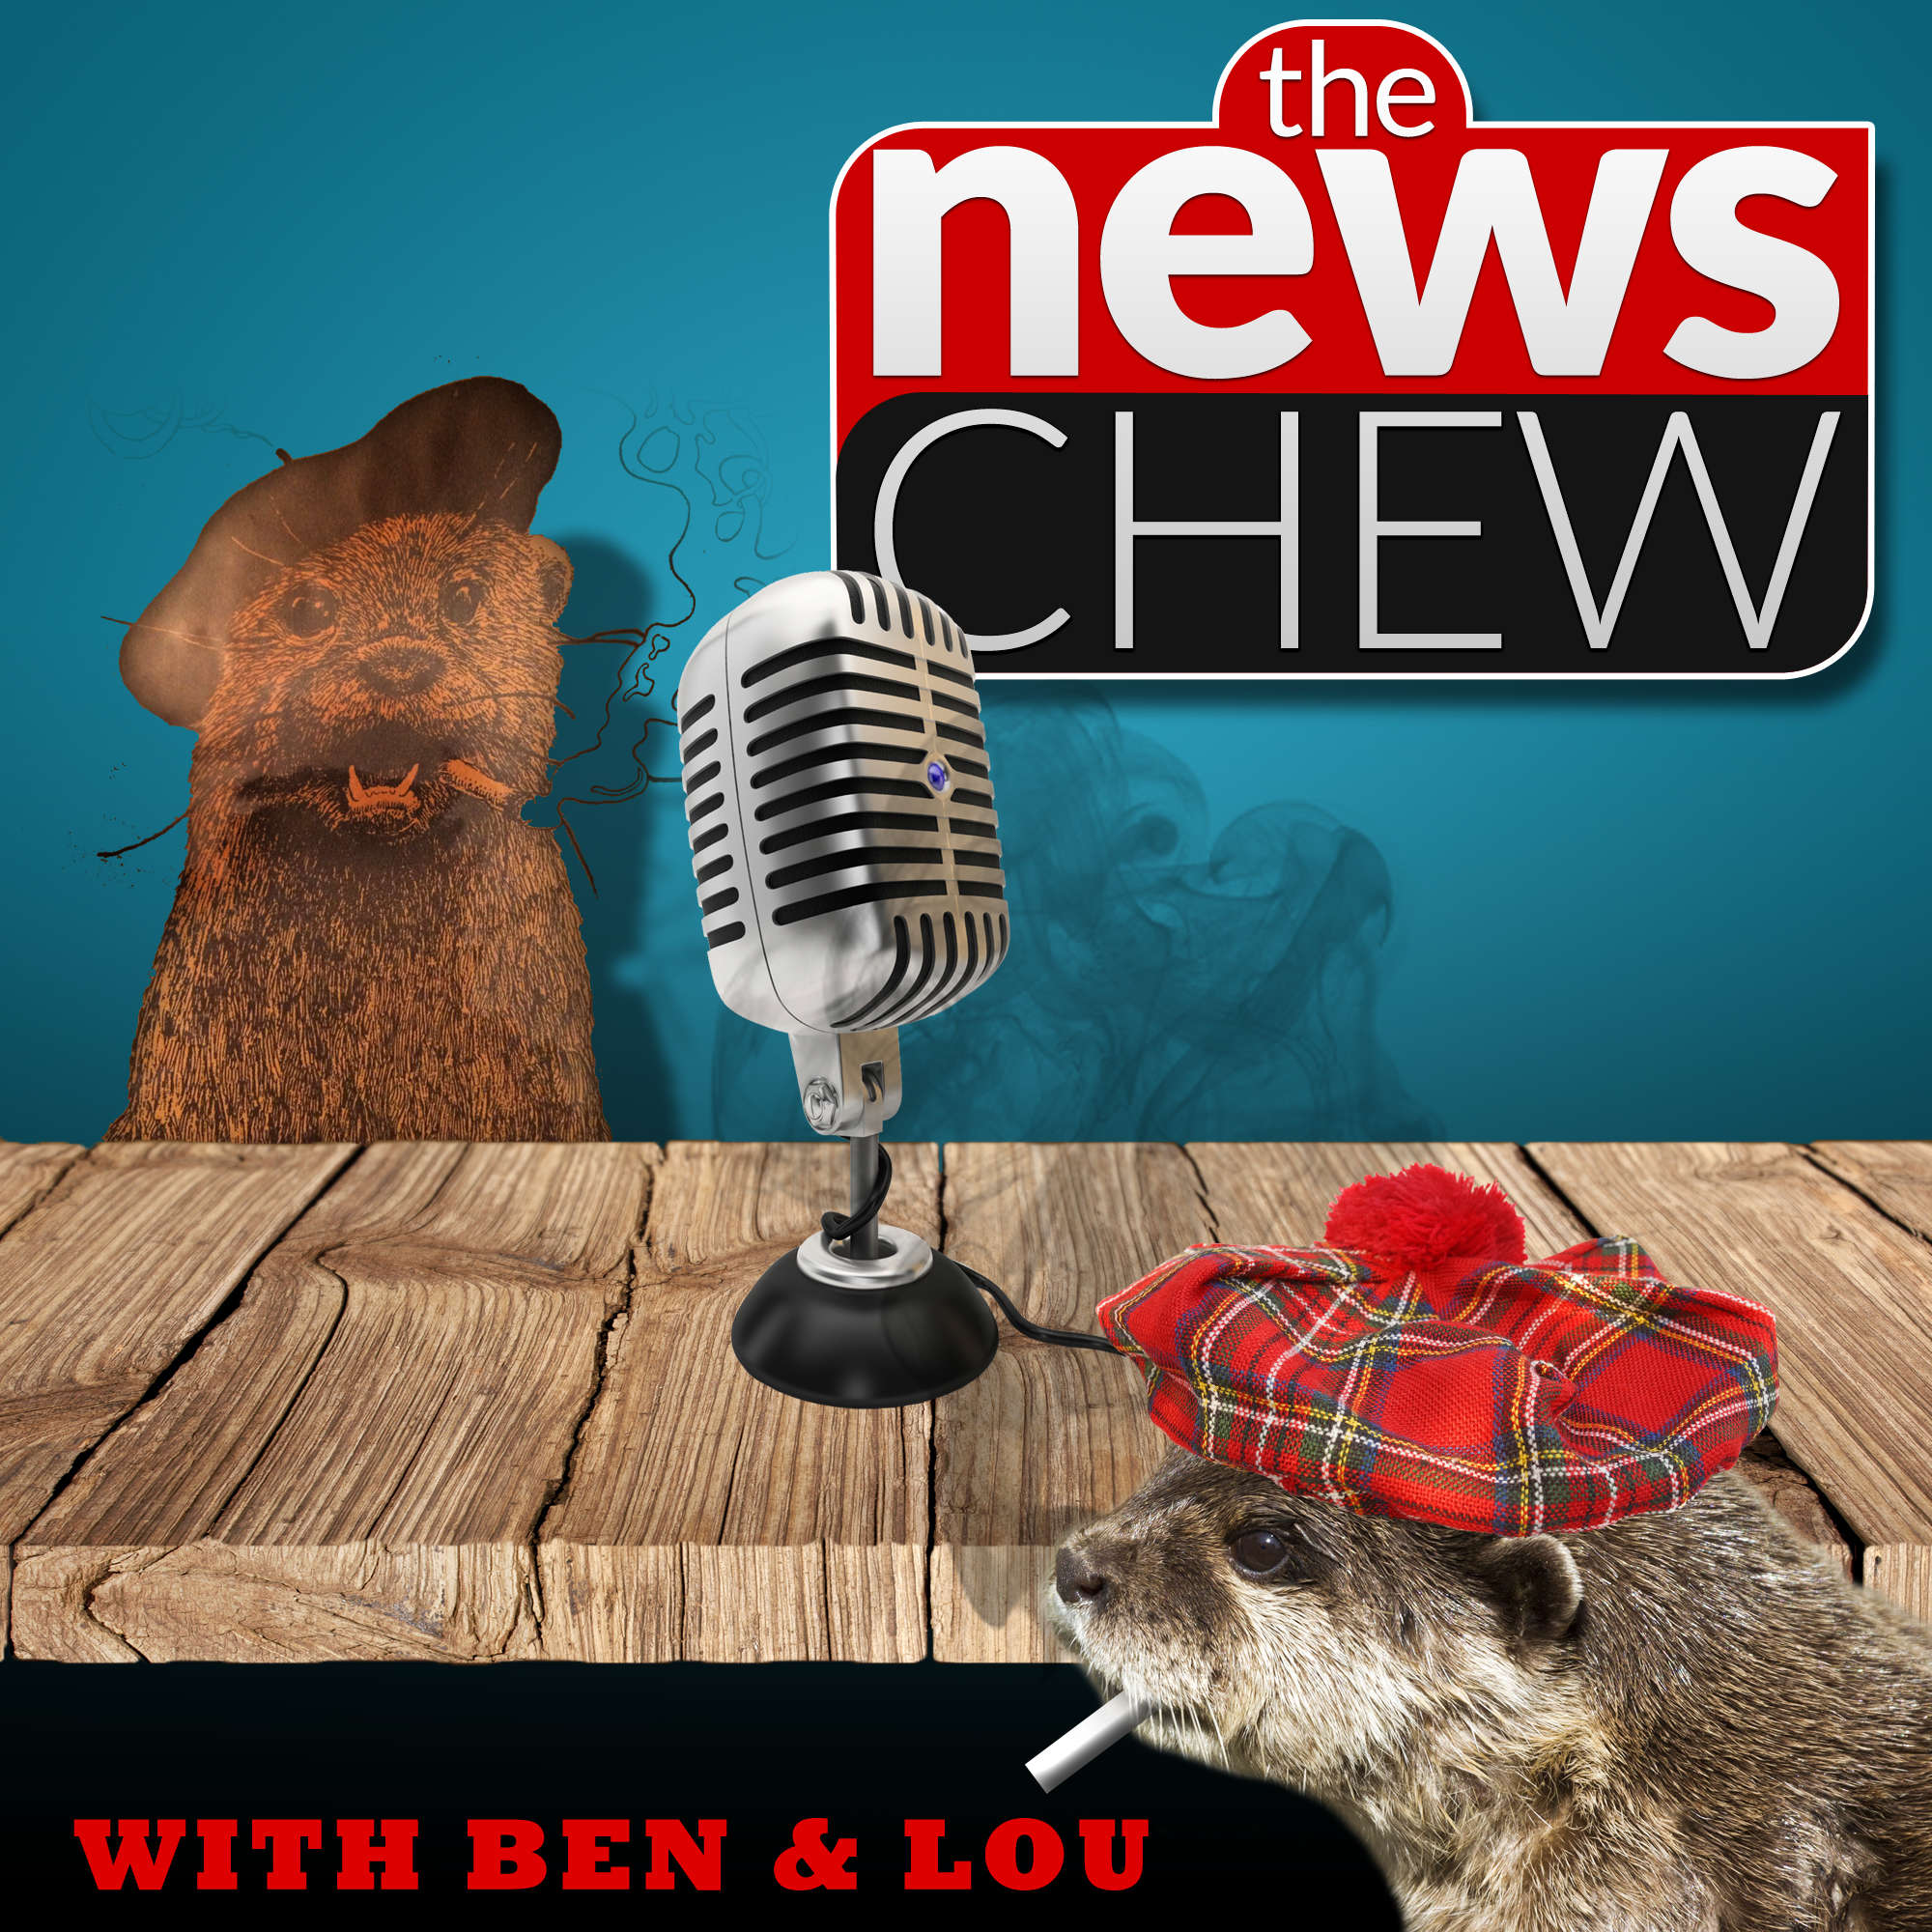 the news chew